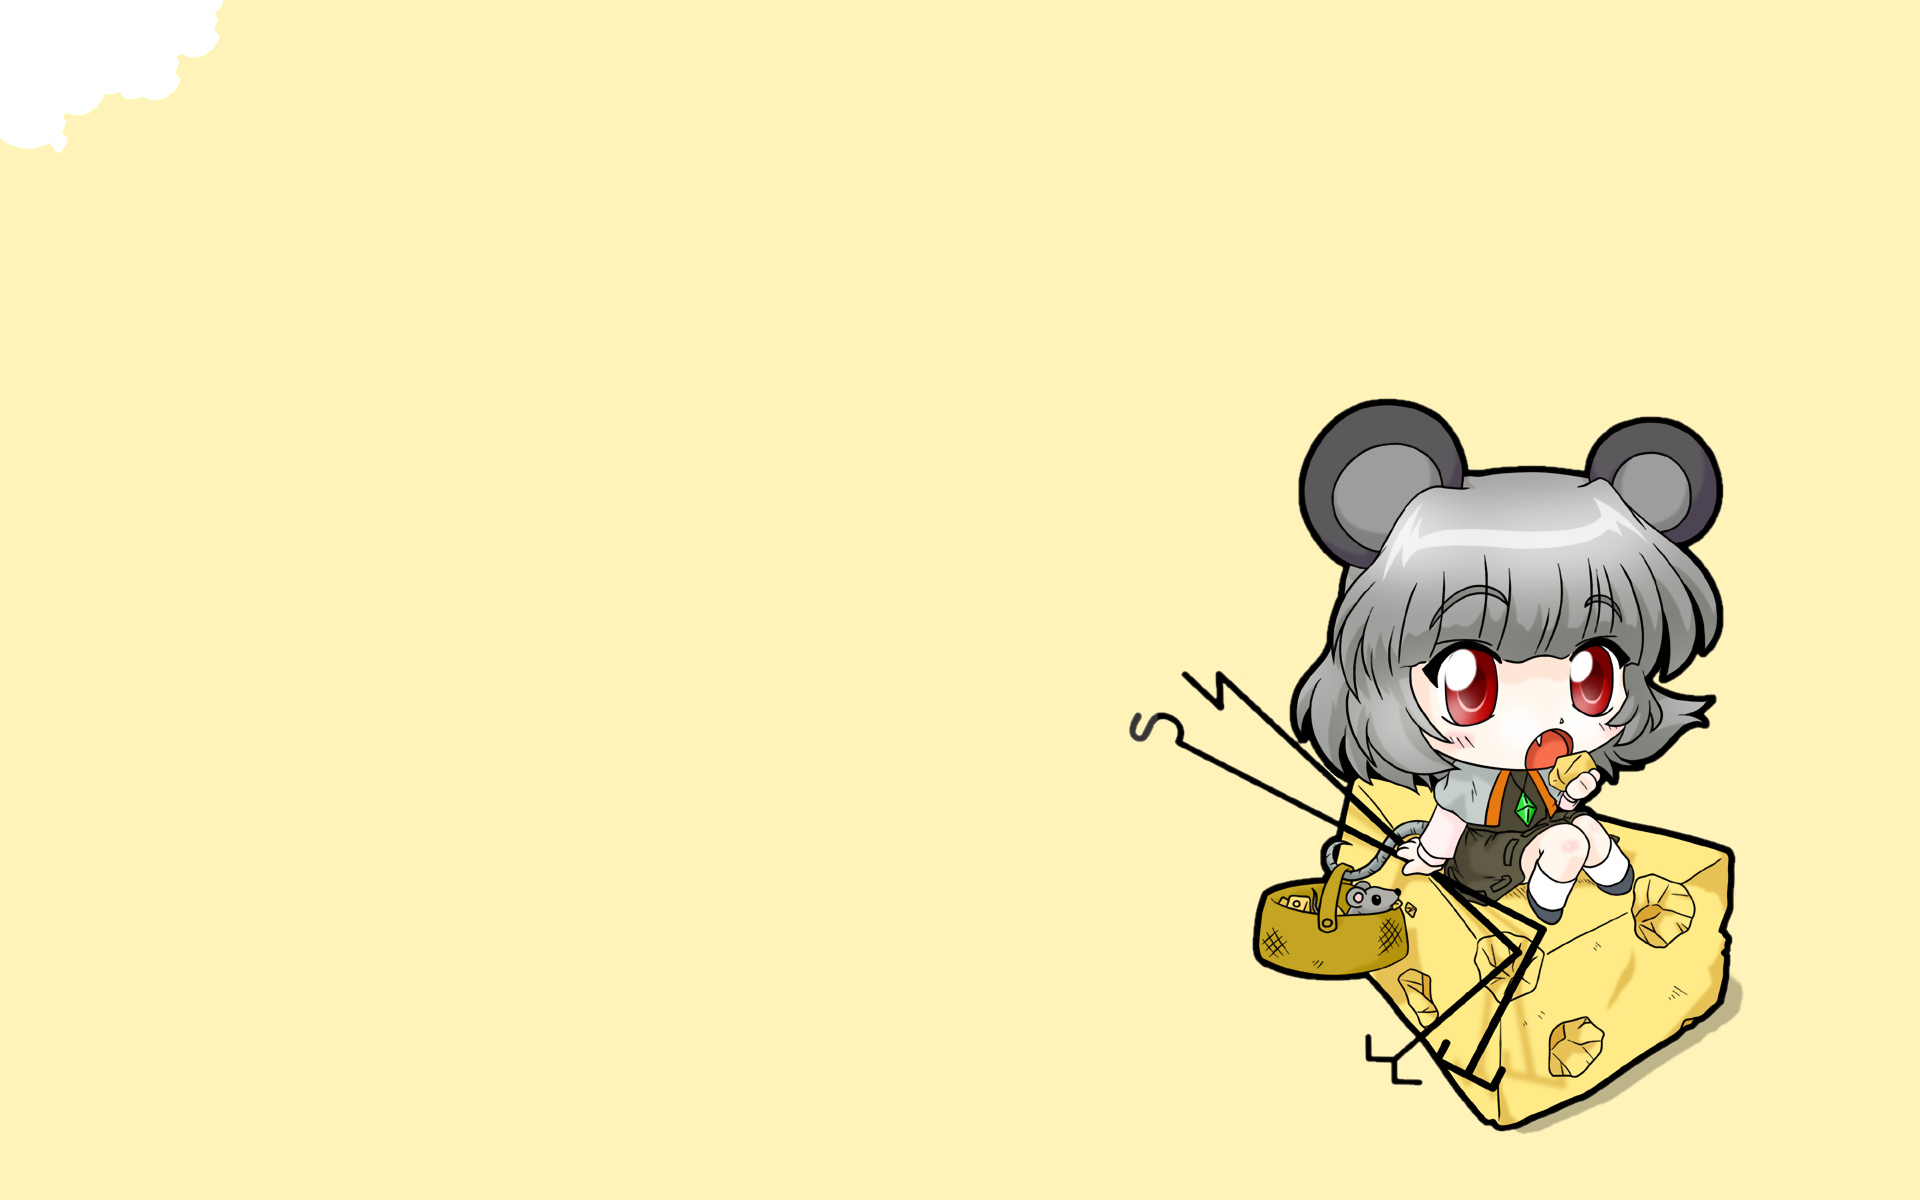 animal animal_ears chibi fang mouse mousegirl nagisuke nazrin red_eyes tail touhou